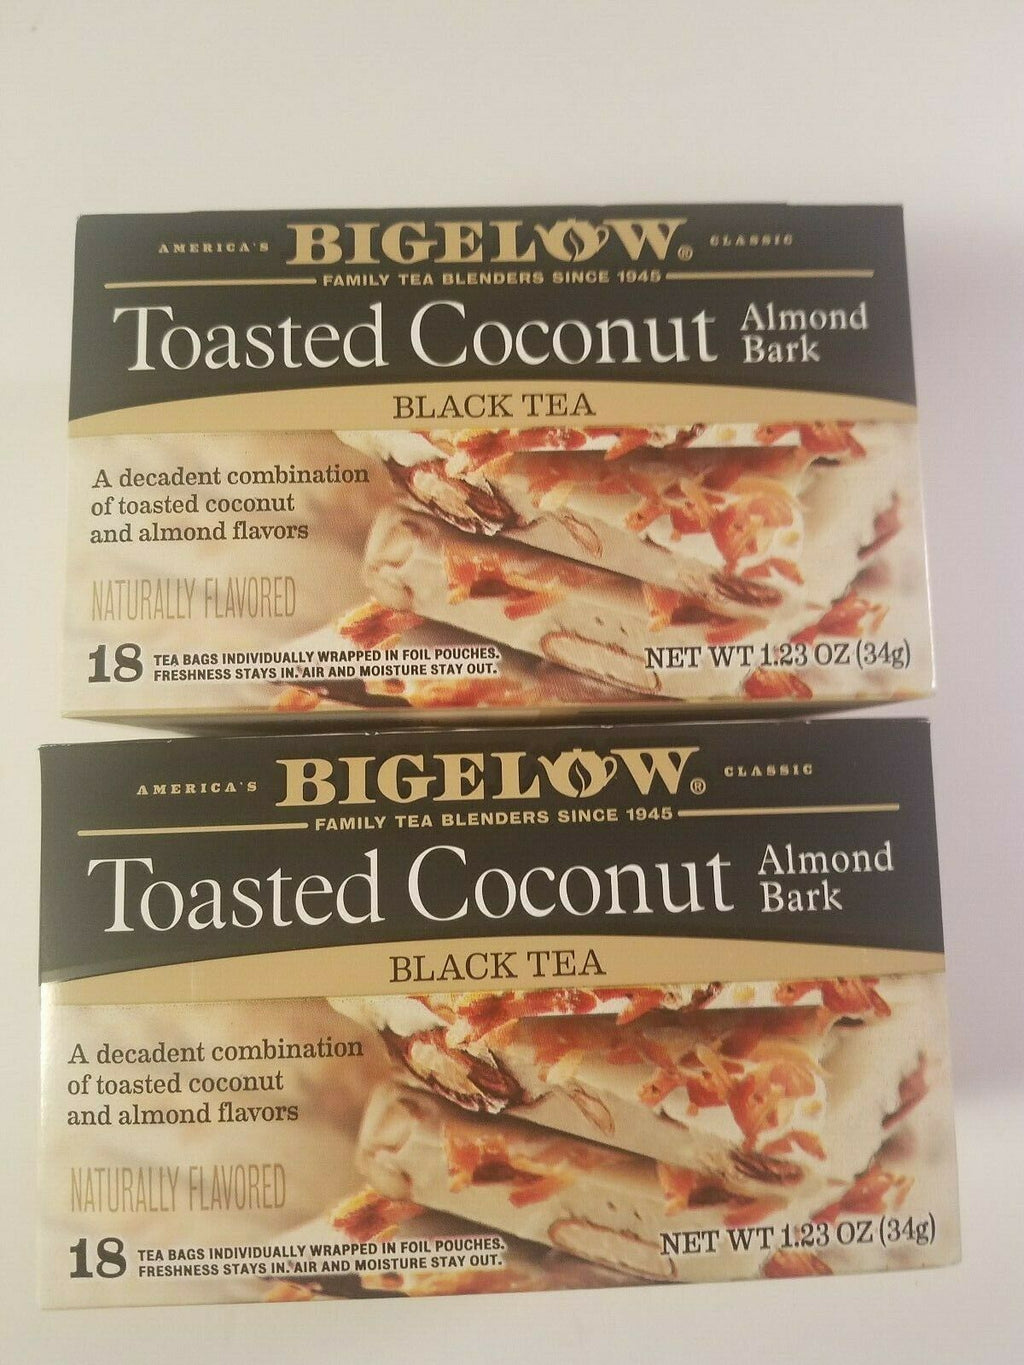 bigelow toasted coconut almond bark black tea 18 count tea bag boxes lot of 2